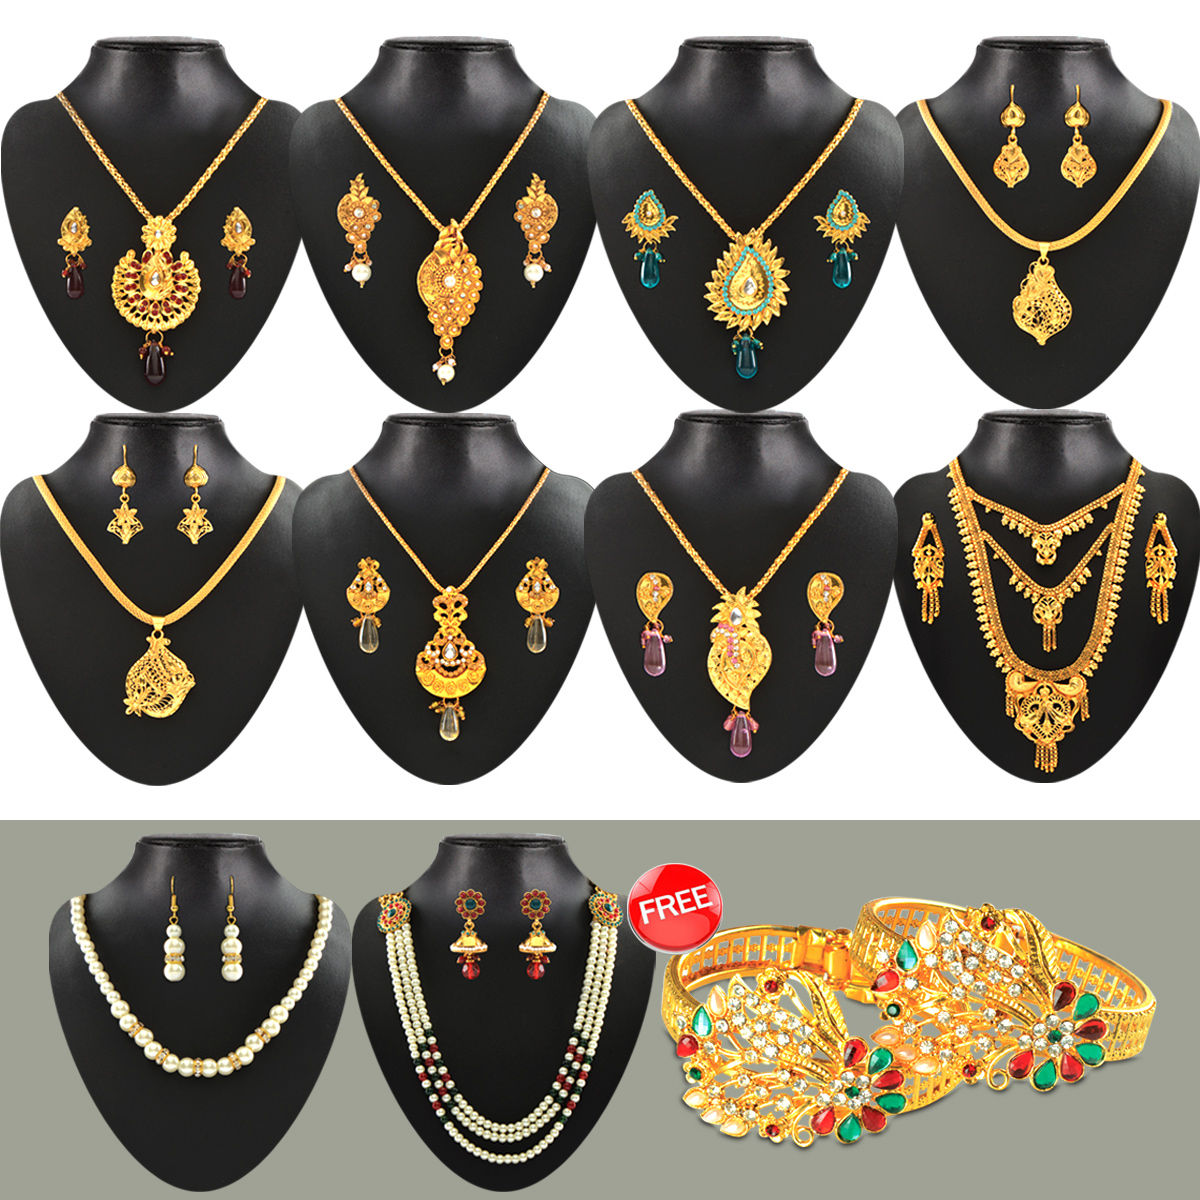 824caf300 Buy Fascinating 1 Gram Gold Plated Jewellery Collection Online at Best  Price in India on Naaptol.com